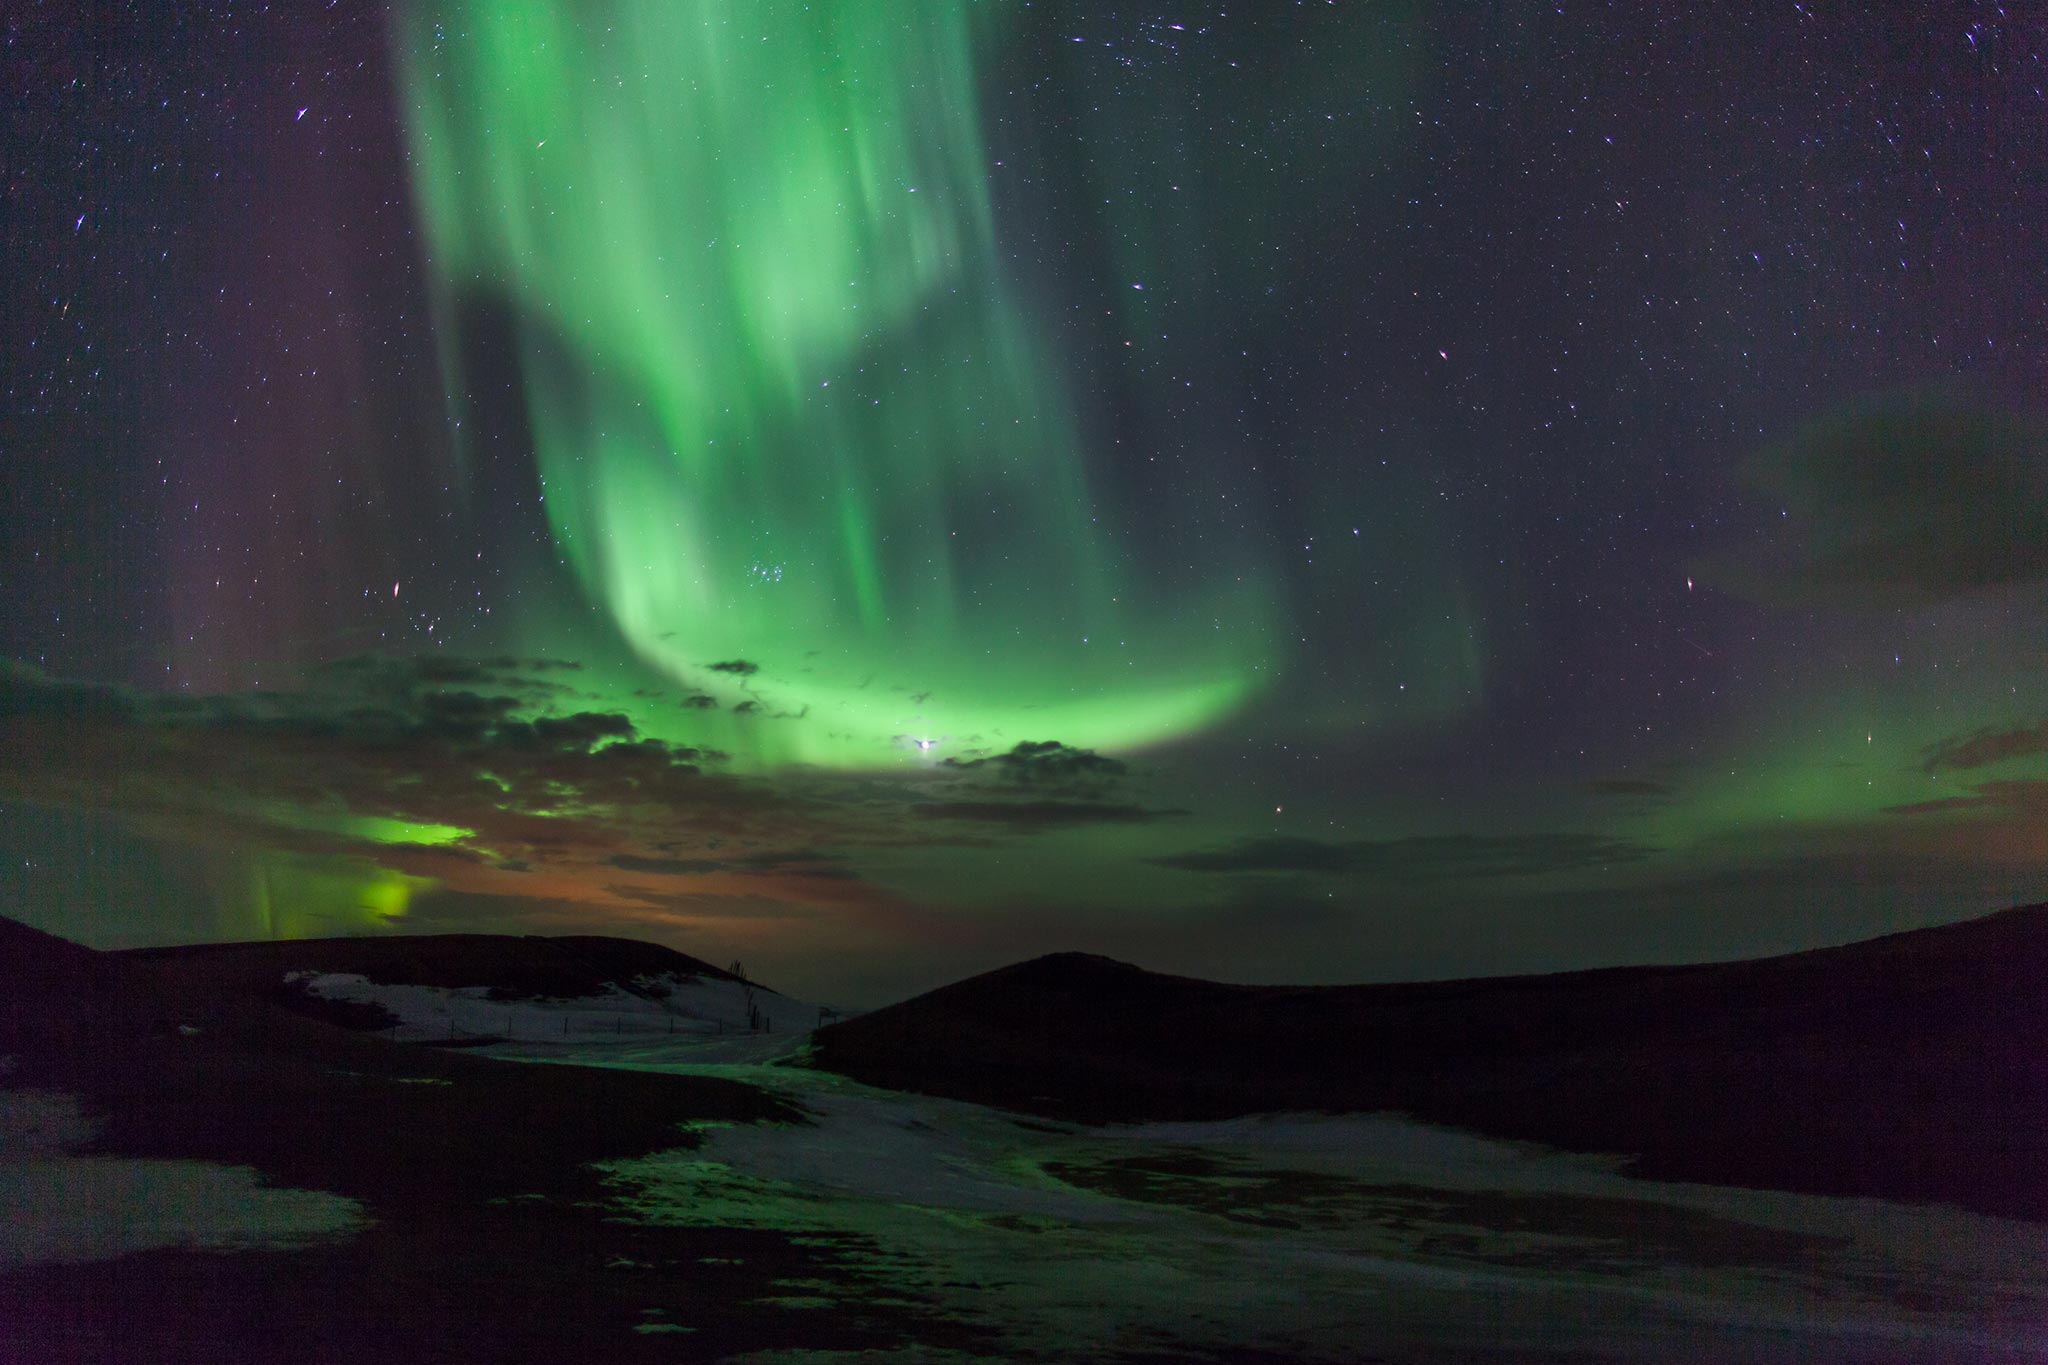 The best place to see the Northern Lights in Iceland